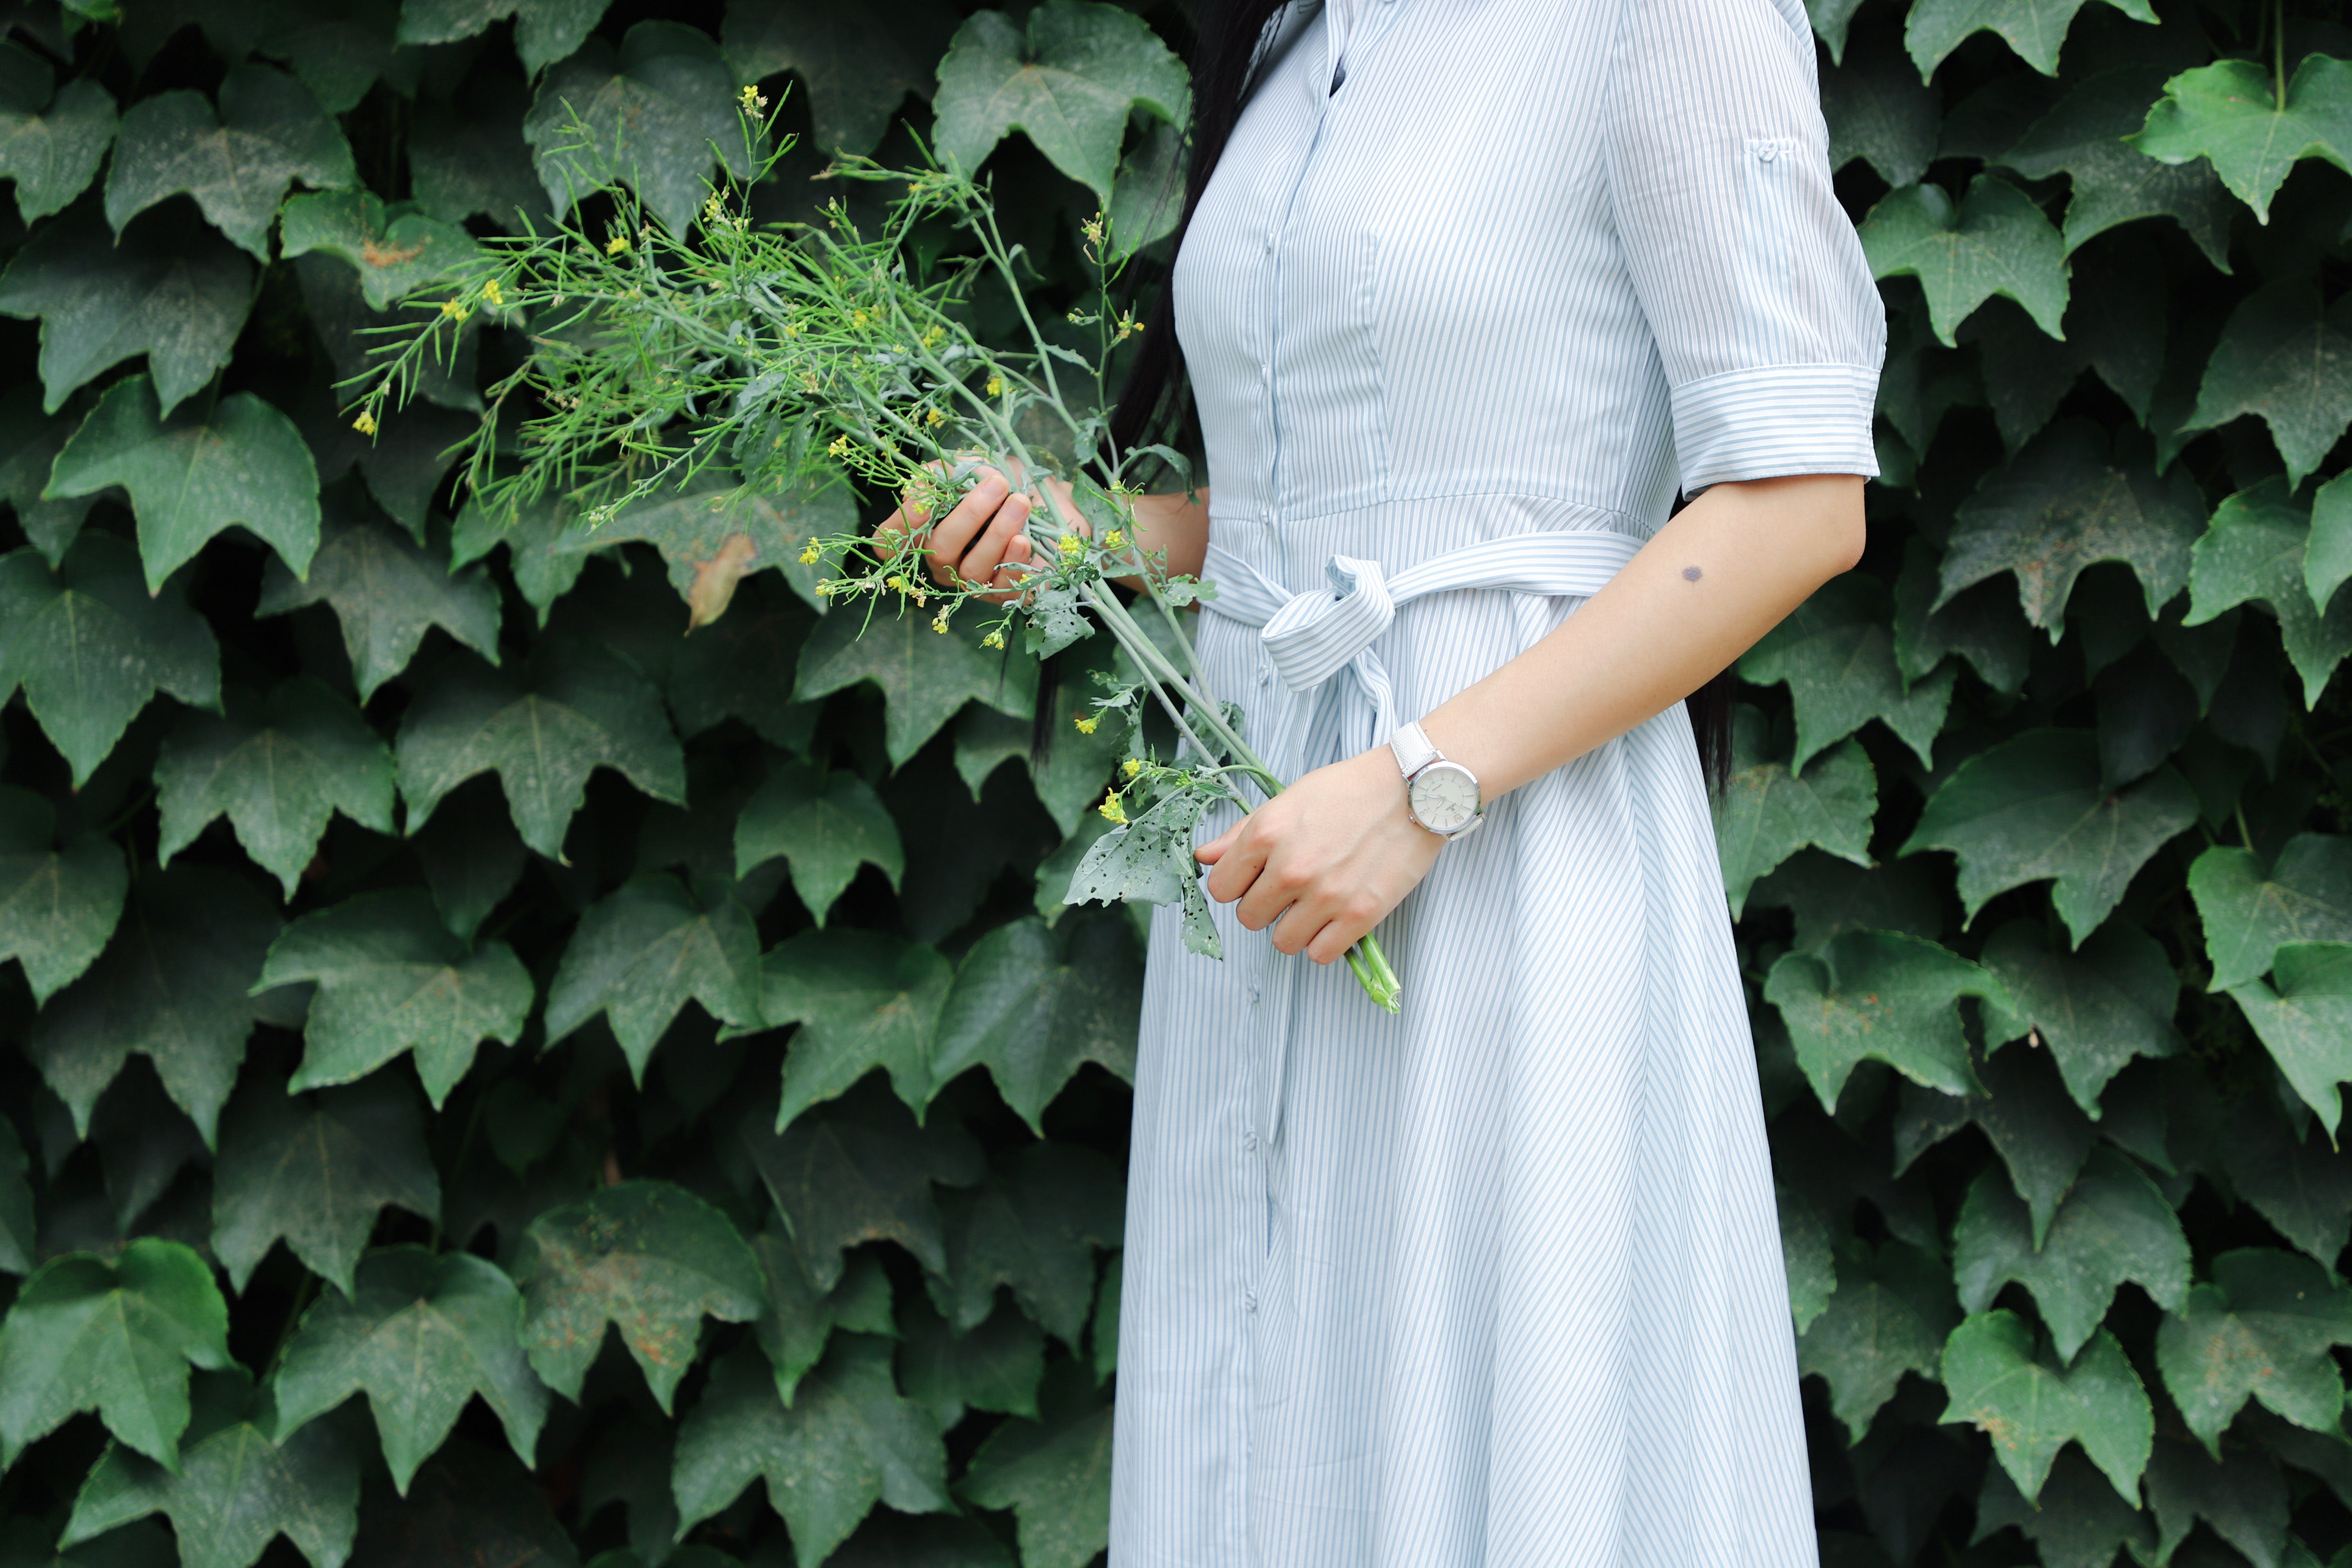 Woman Holding Flowers Near Green Leafed Plants